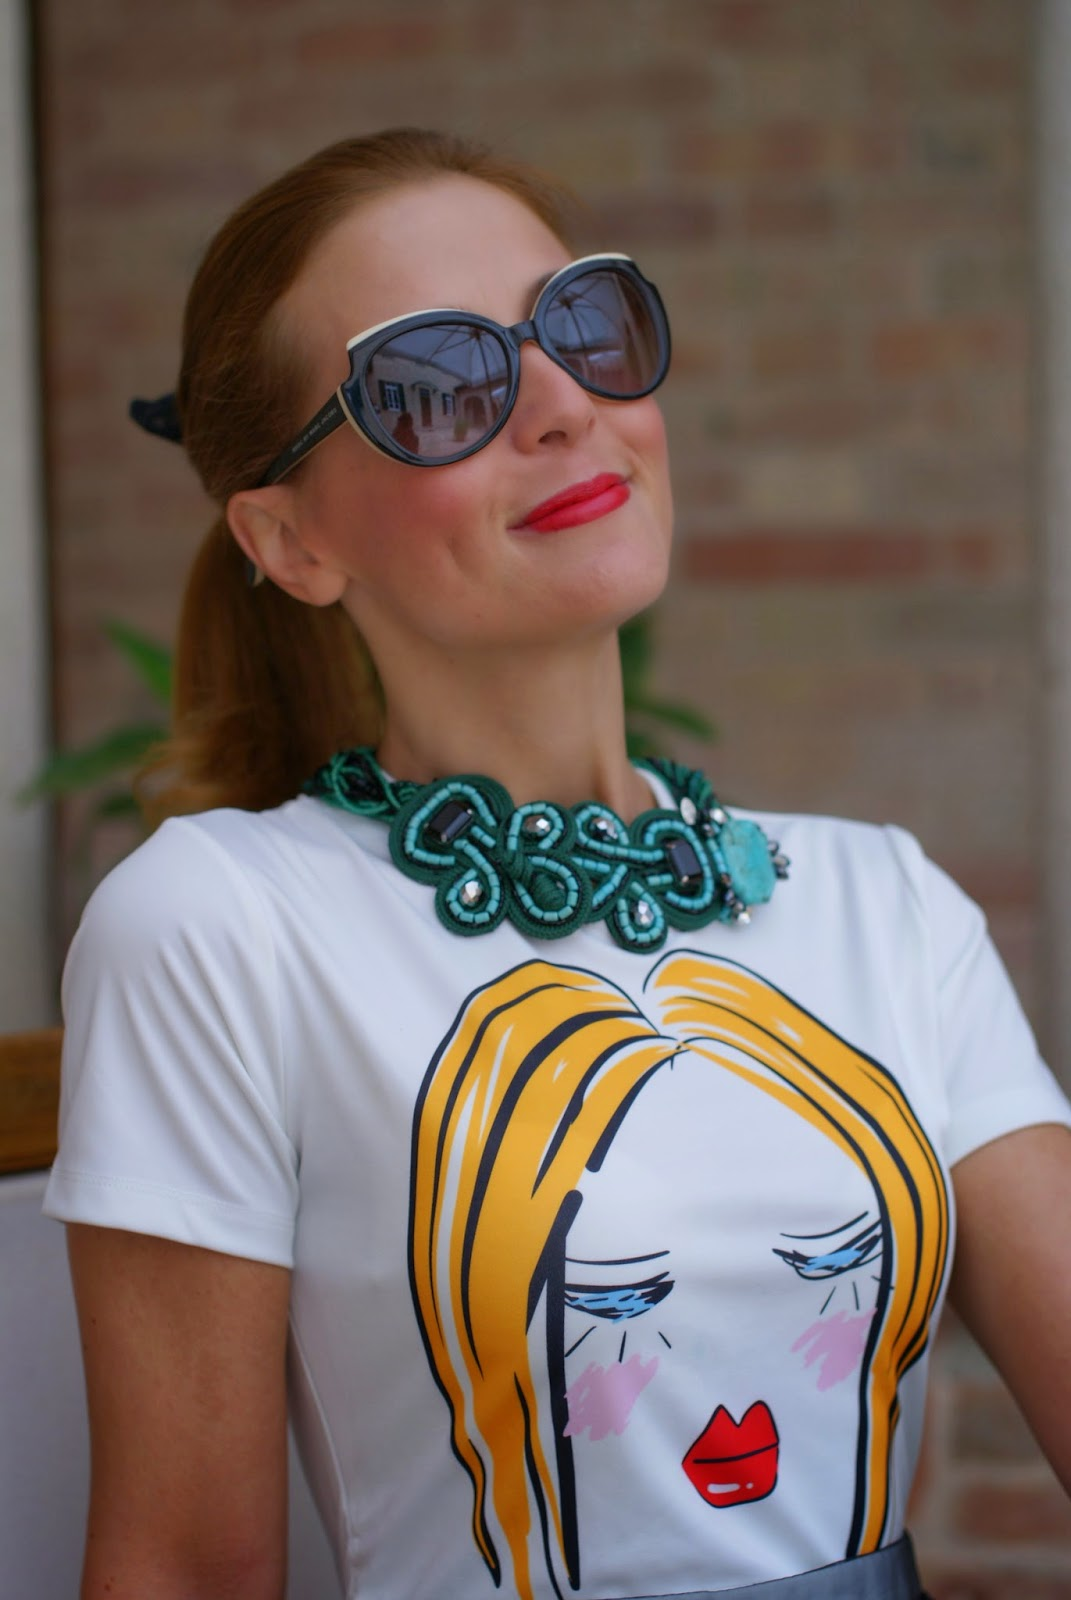 Blackfive lady head dress, Marc by Marc jacobs sunglasses, Sodini necklace, Fashion and Cookies, fashion blogger